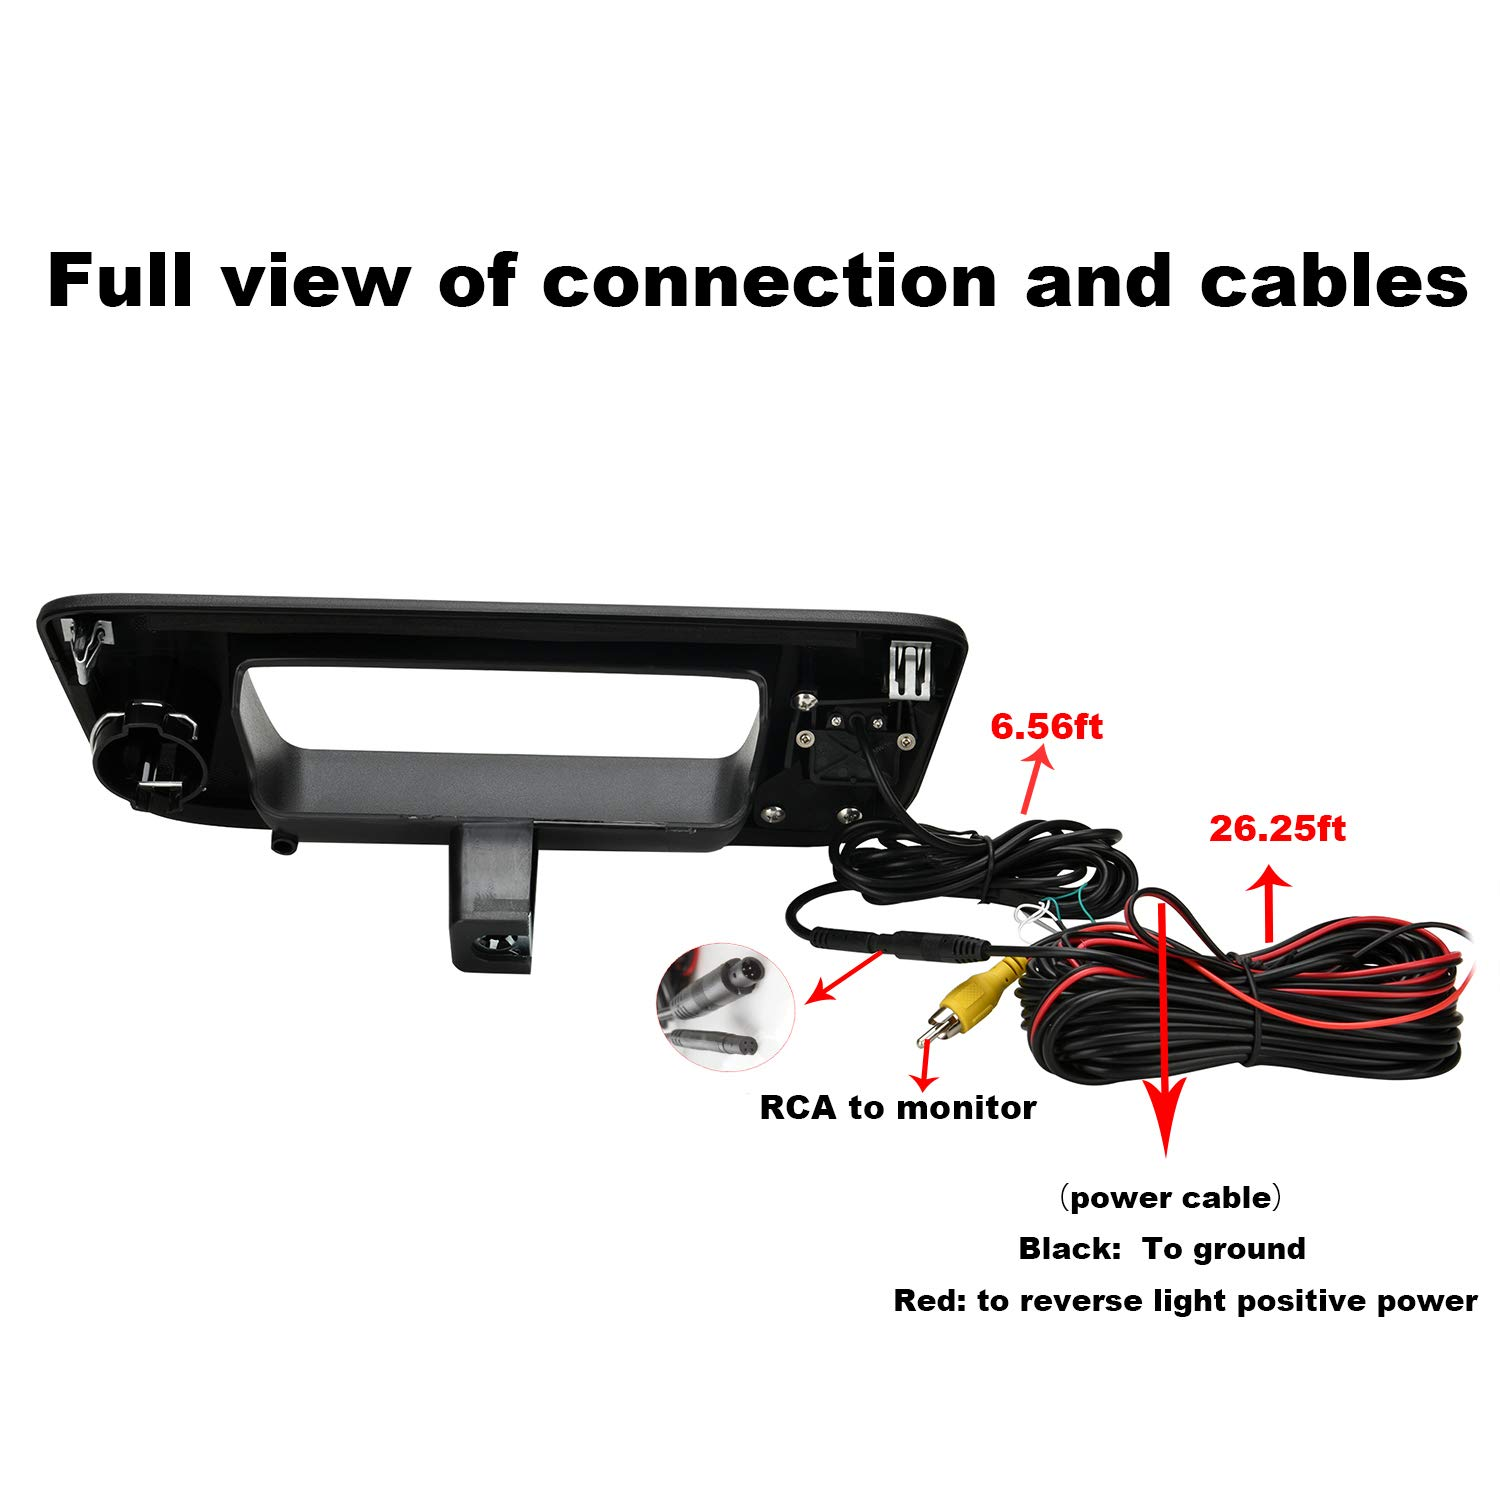 Canying Tailgate Truck Handle Back up Reverse Rear View Camera for Chevrolet//GMC Silverado Sierra 2007-2013 Shenzhen Zhuohan Technology Co Ltd CA-ZH910L